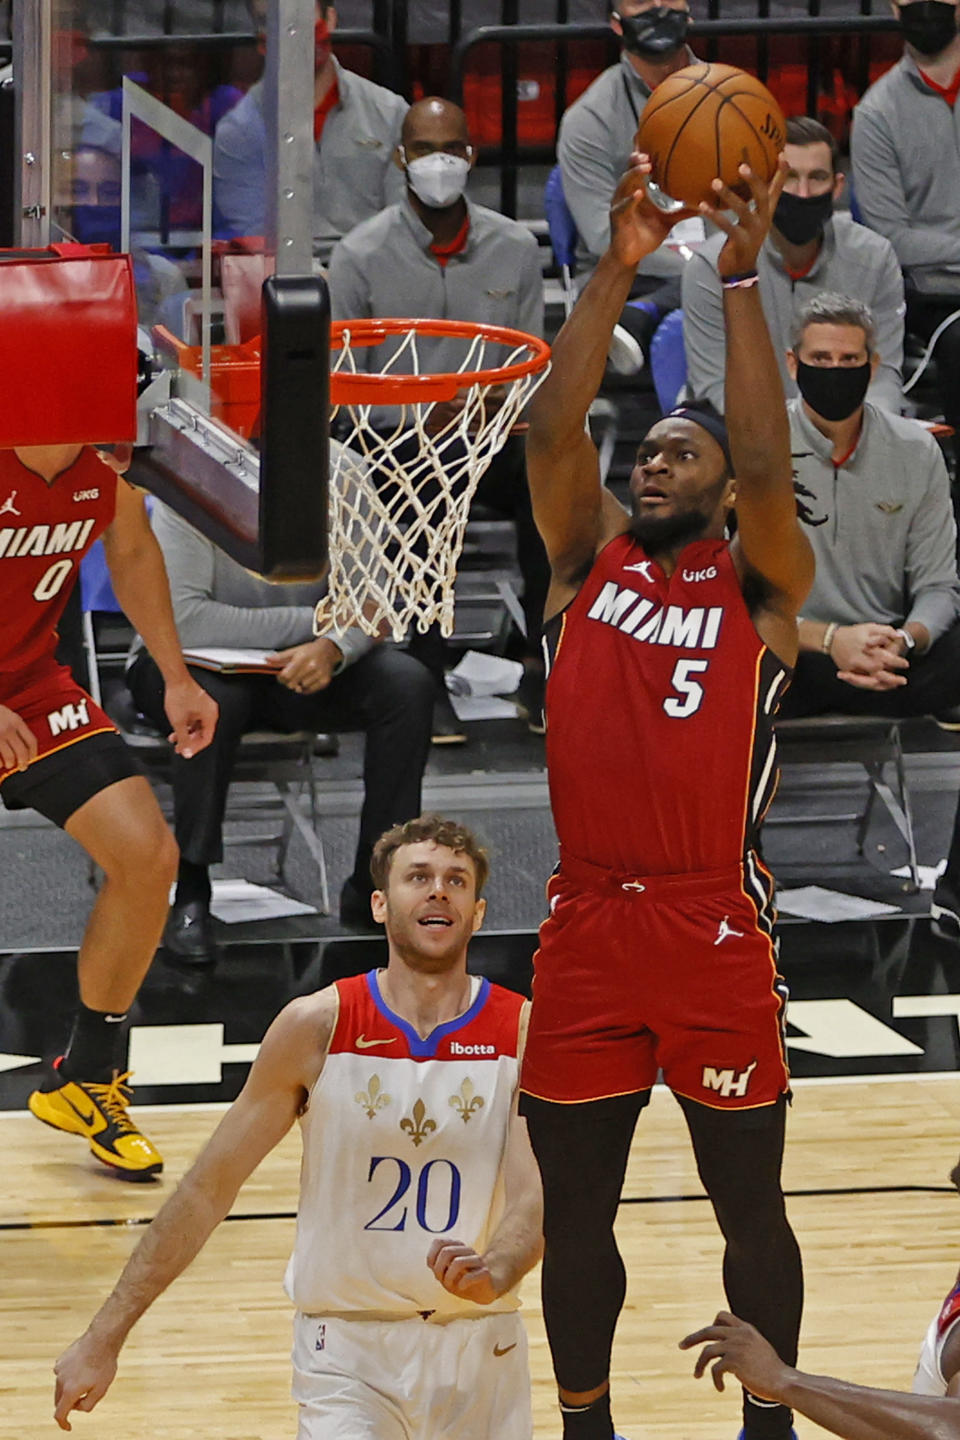 New Orleans Pelicans forward Nicolo Melli (20) looks up as Miami Heat forward Precious Achiuwa (5) goes to the basket during the second half of an NBA basketball game, Friday, Dec. 25, 2020, in Miami. (AP Photo/Joel Auerbach)